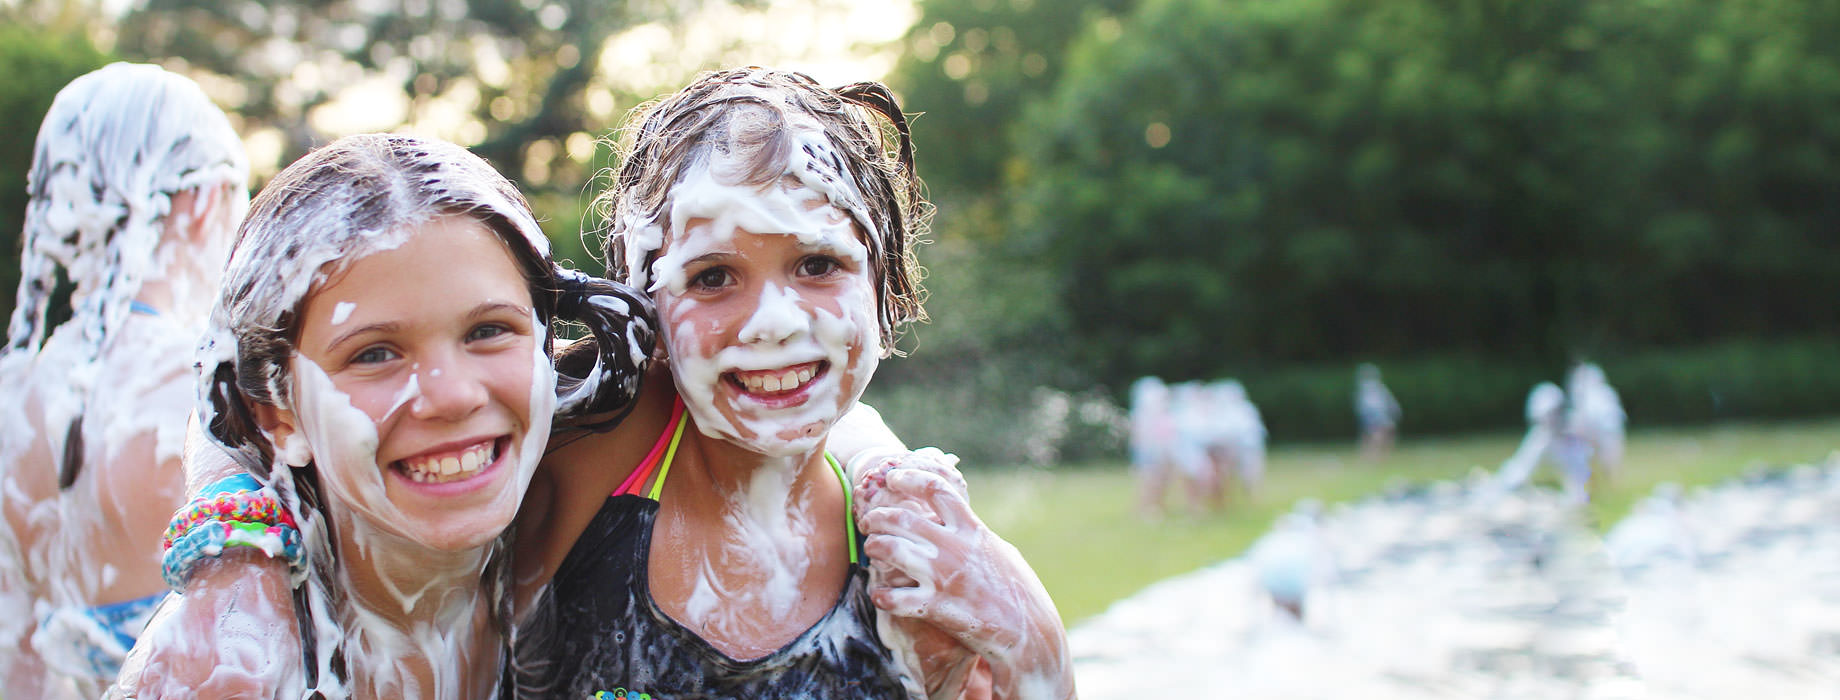 Fun Summer Camp Special Events